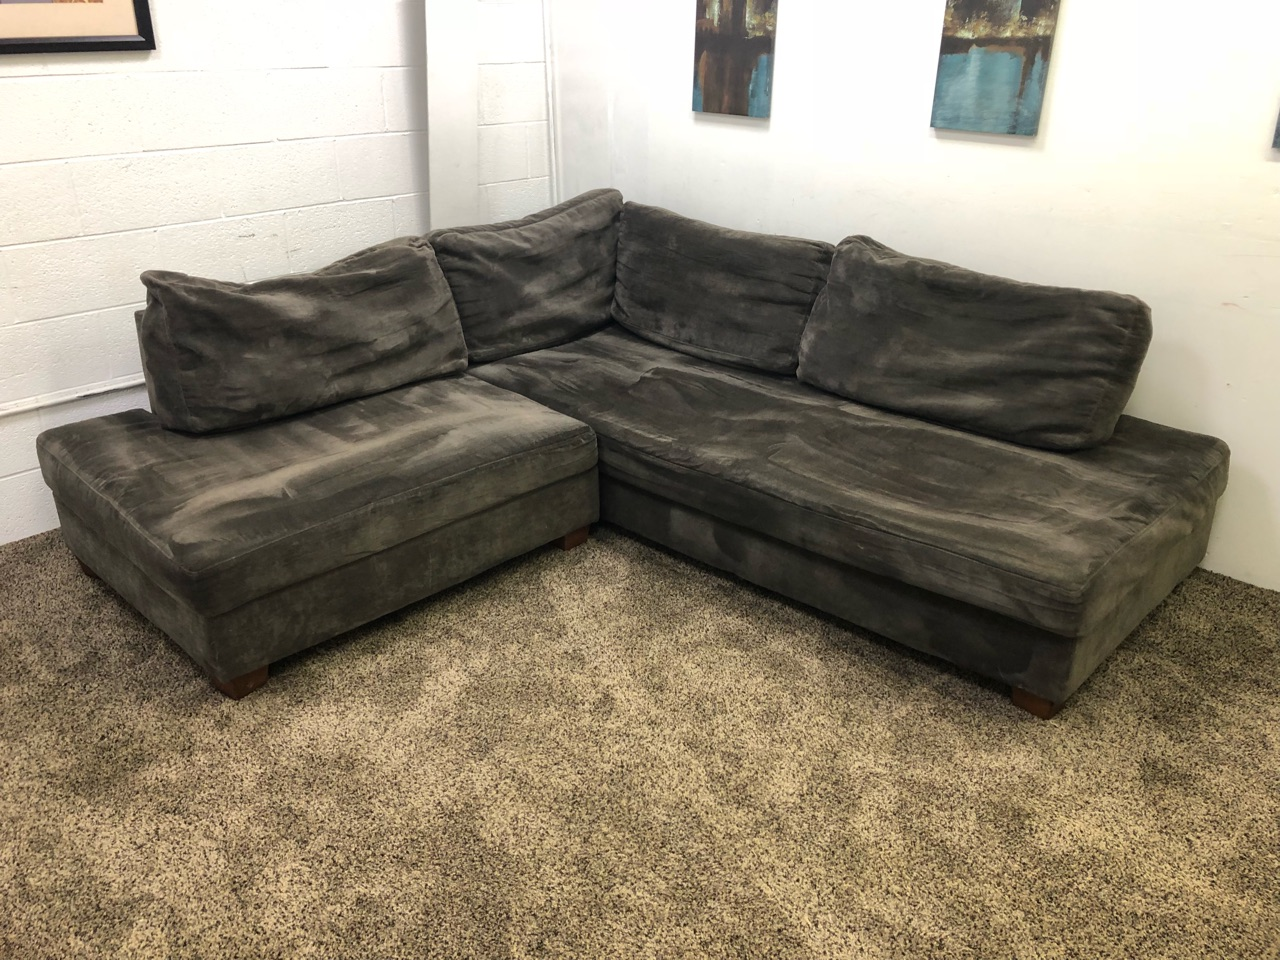 Refurbished Dark Brown Chenille Sectional Sofa Set W/ Chaise Lounge